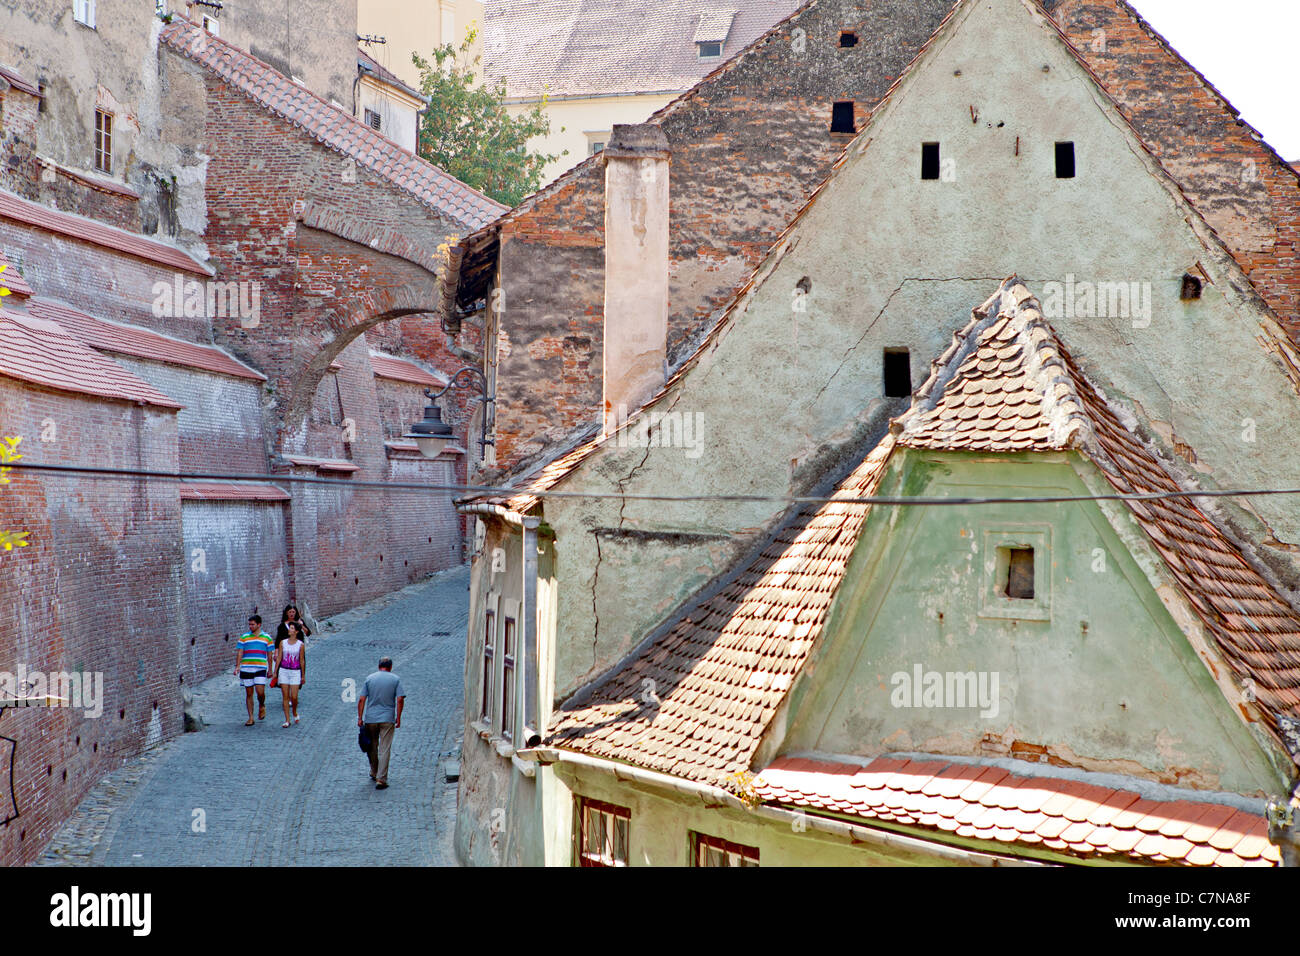 Old Town of Sibiu, Romania - Stock Image